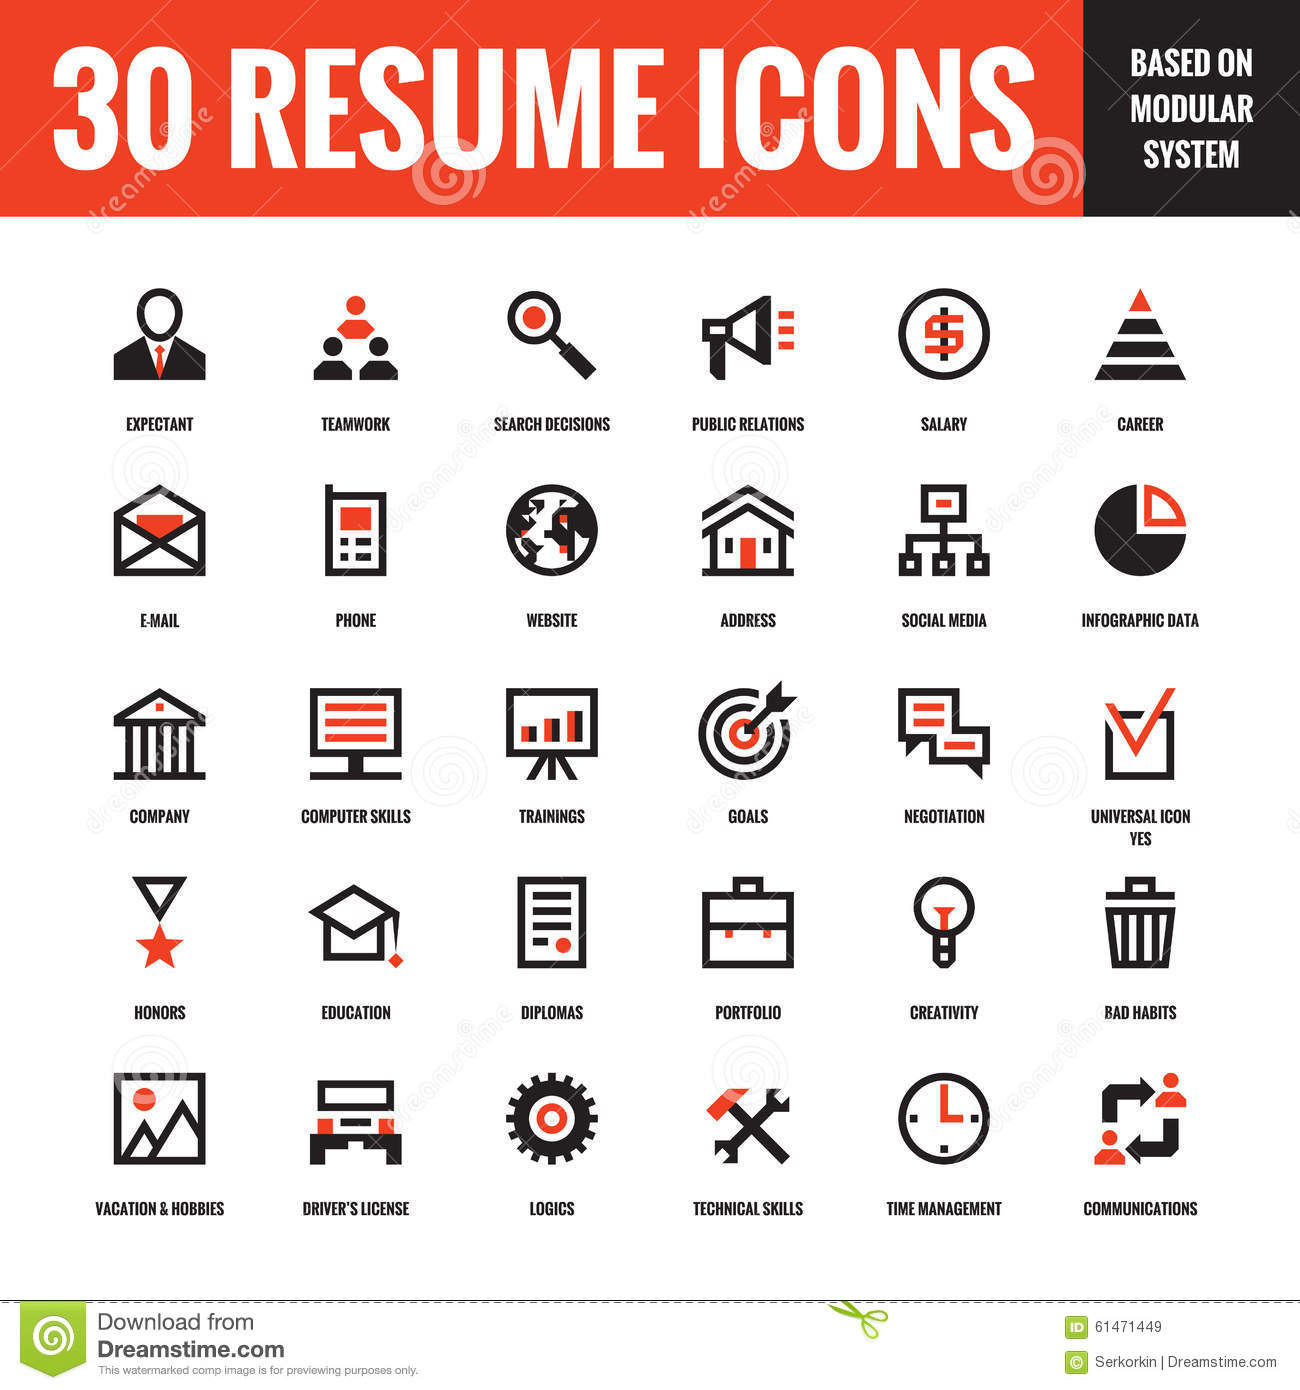 30 resume creative vector icons based on modular system  set of 30 business concept vector icons